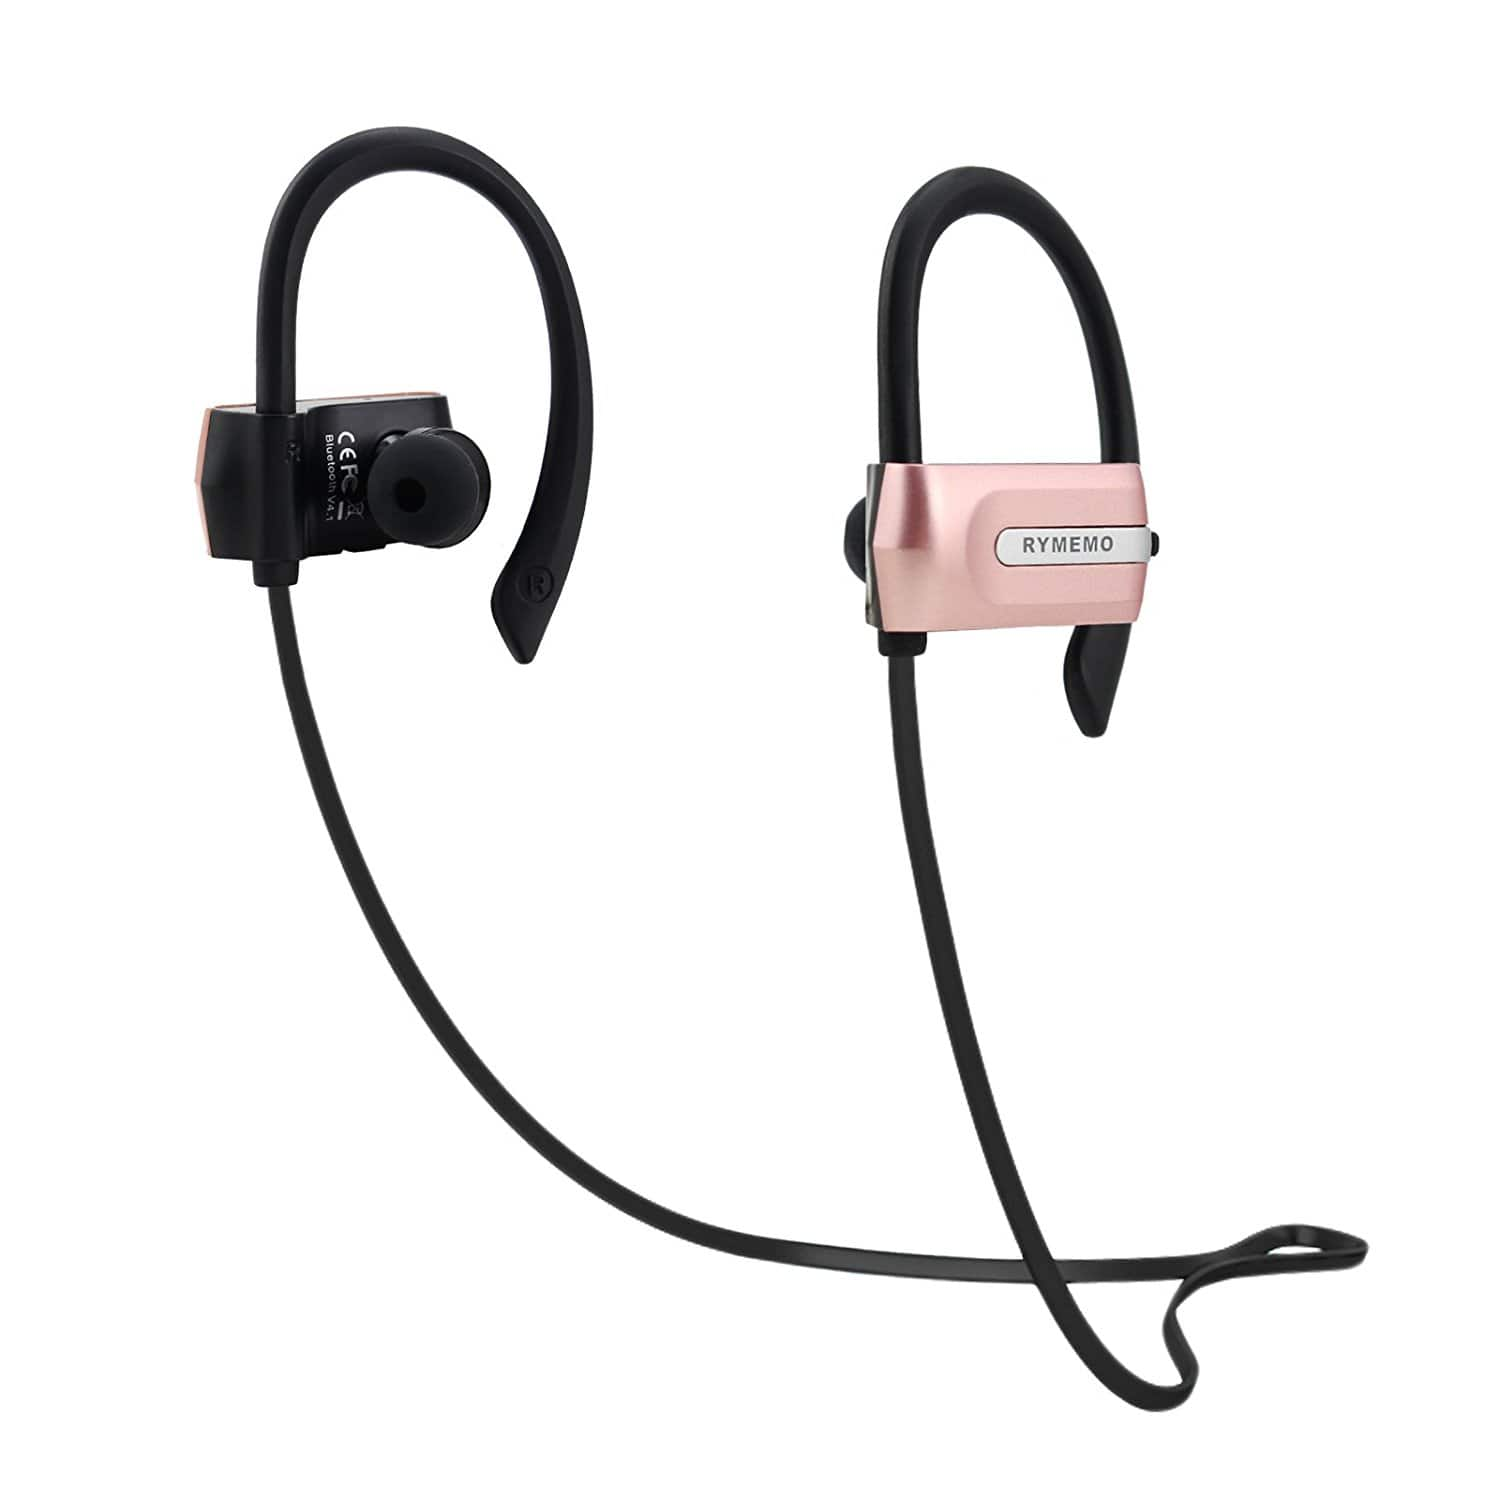 Wireless Bluetooth Headset Headphones with Noise Cancelling for $9.44 @ Amazon